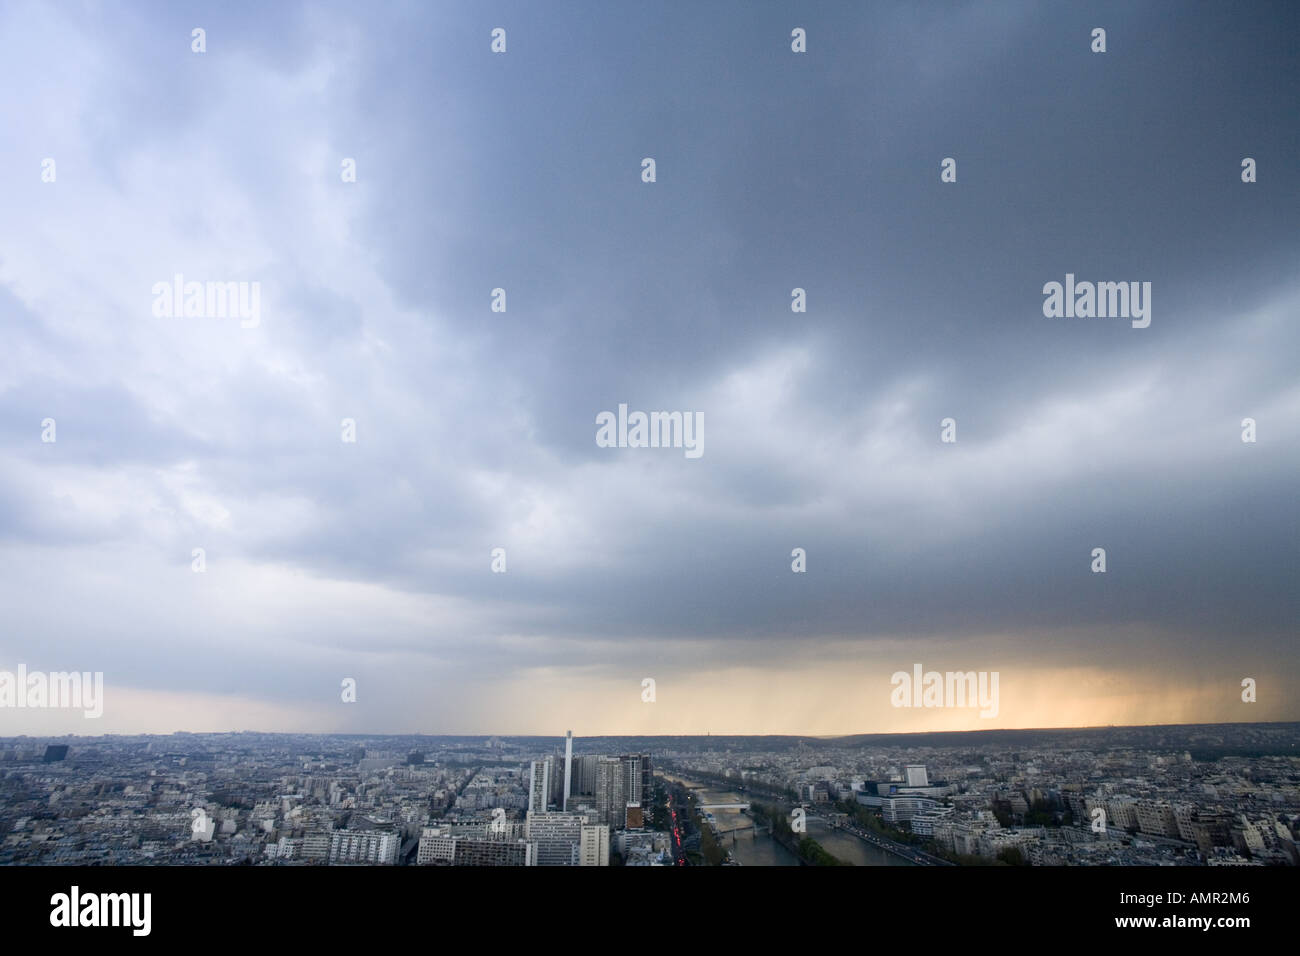 View from the Eiffel Tower Paris - Stock Image